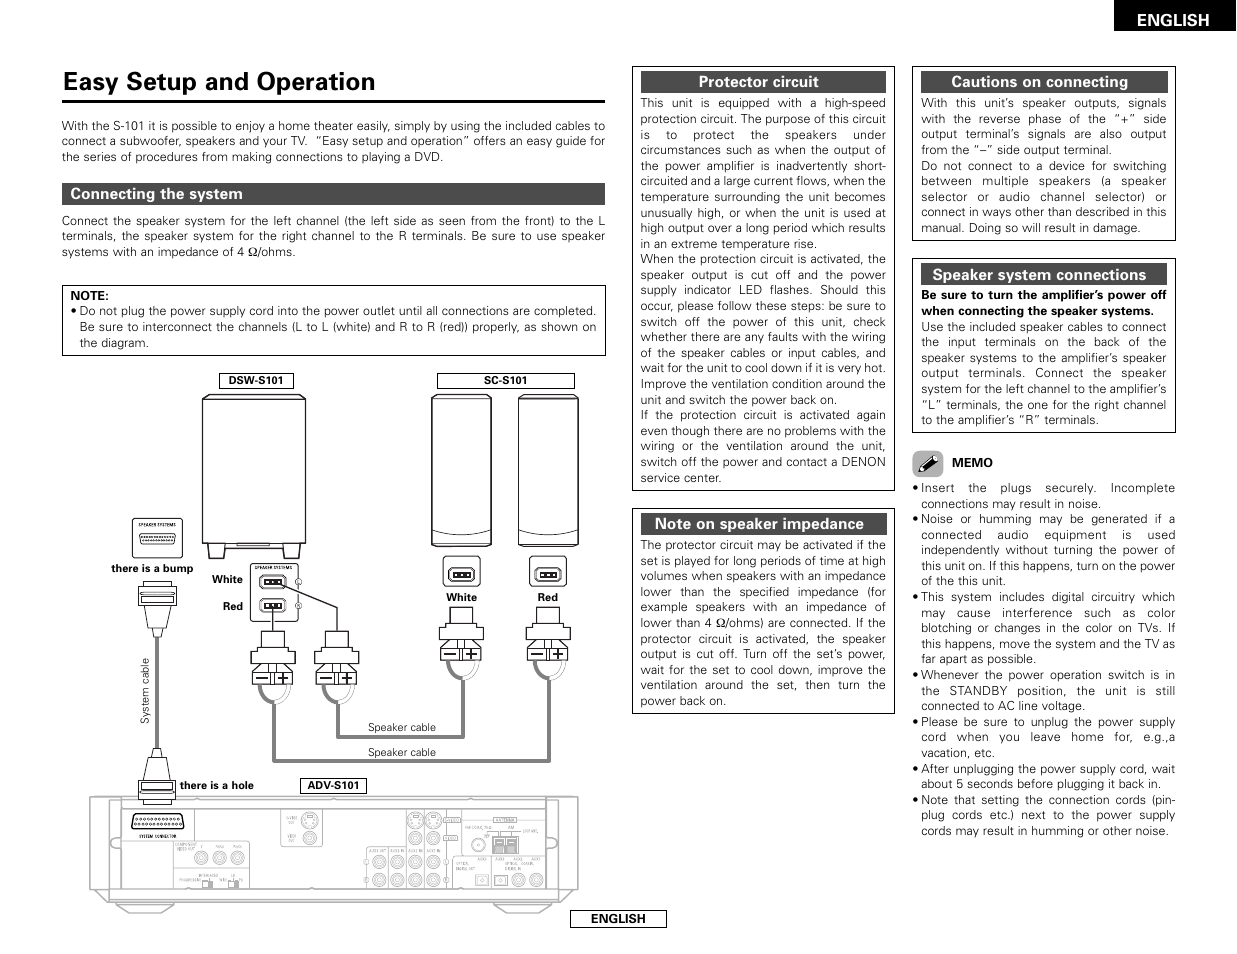 Easy Setup And Operation Denon S 101 User Manual Page 13 138 Series Parallel Wiring On Electrical Multiple Outlets